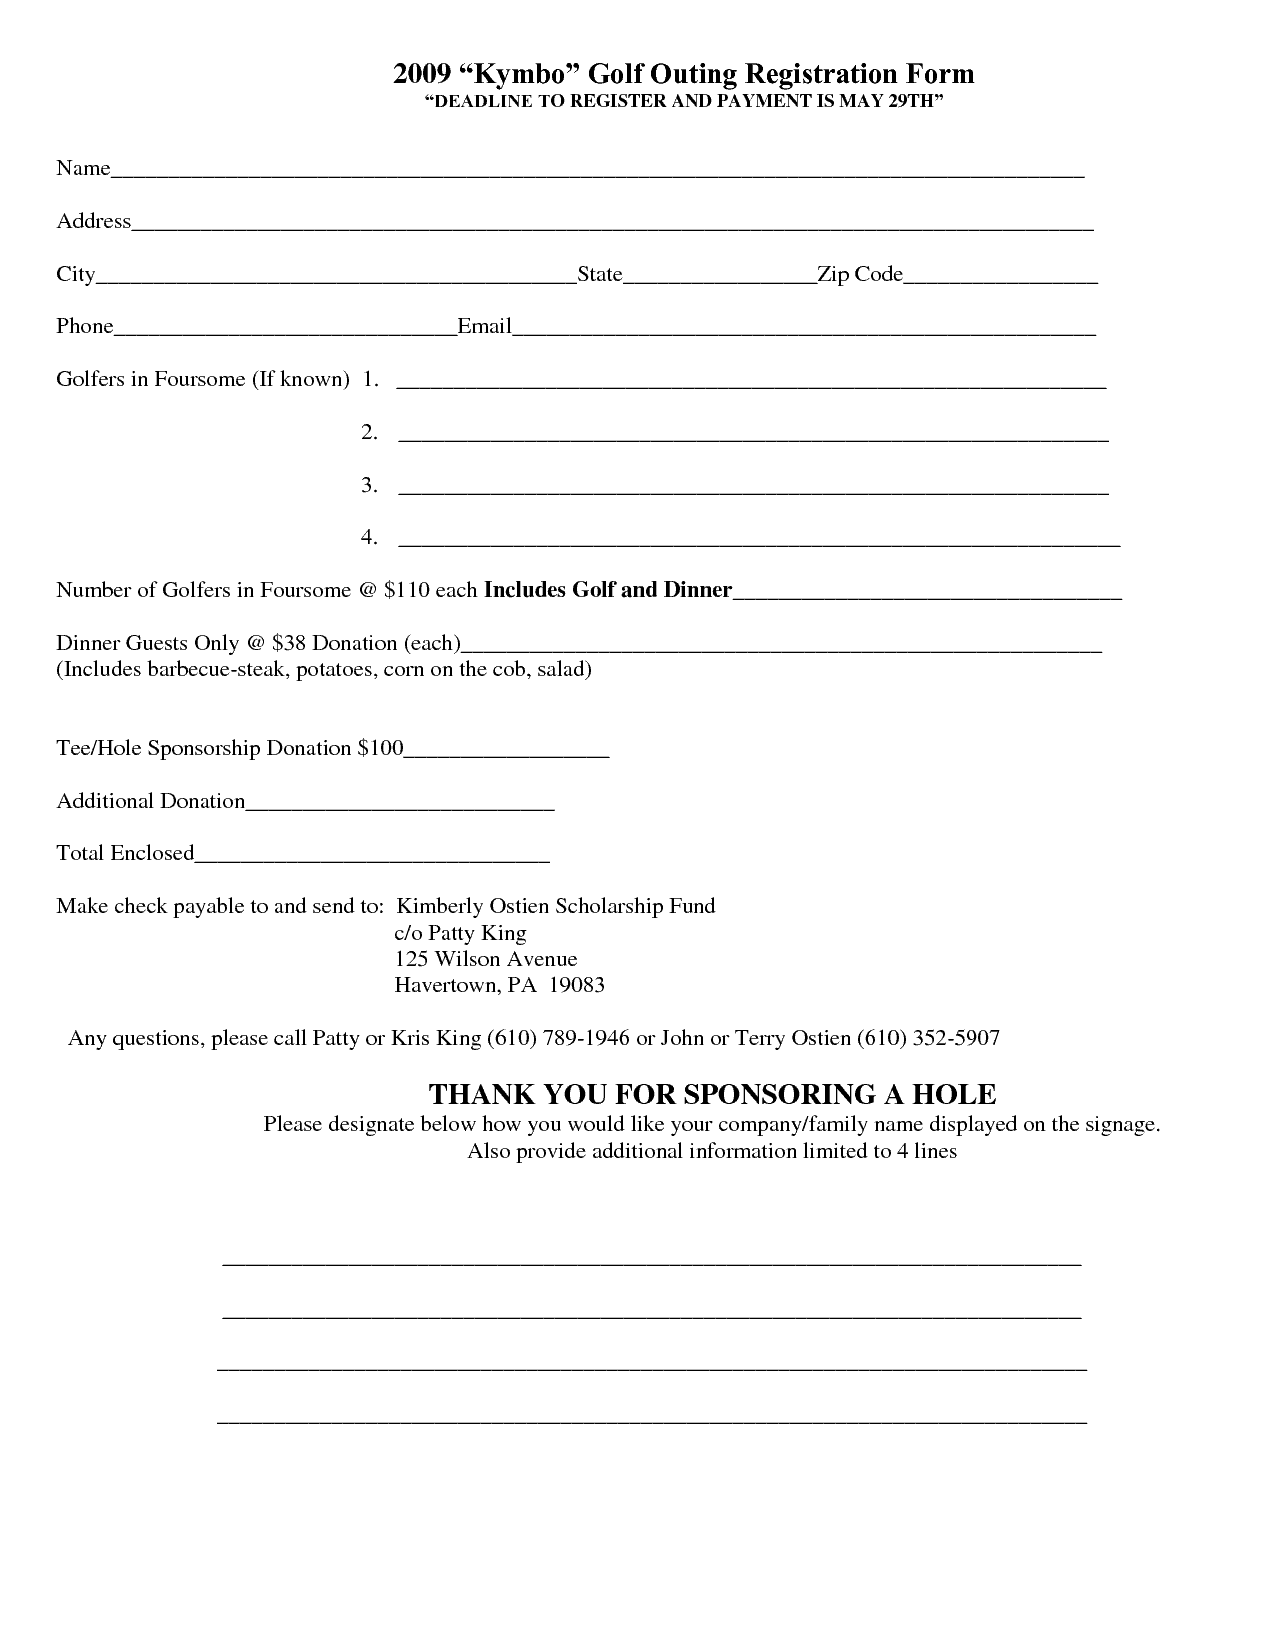 Registration Form Template 404  Customer Registration Form Sample